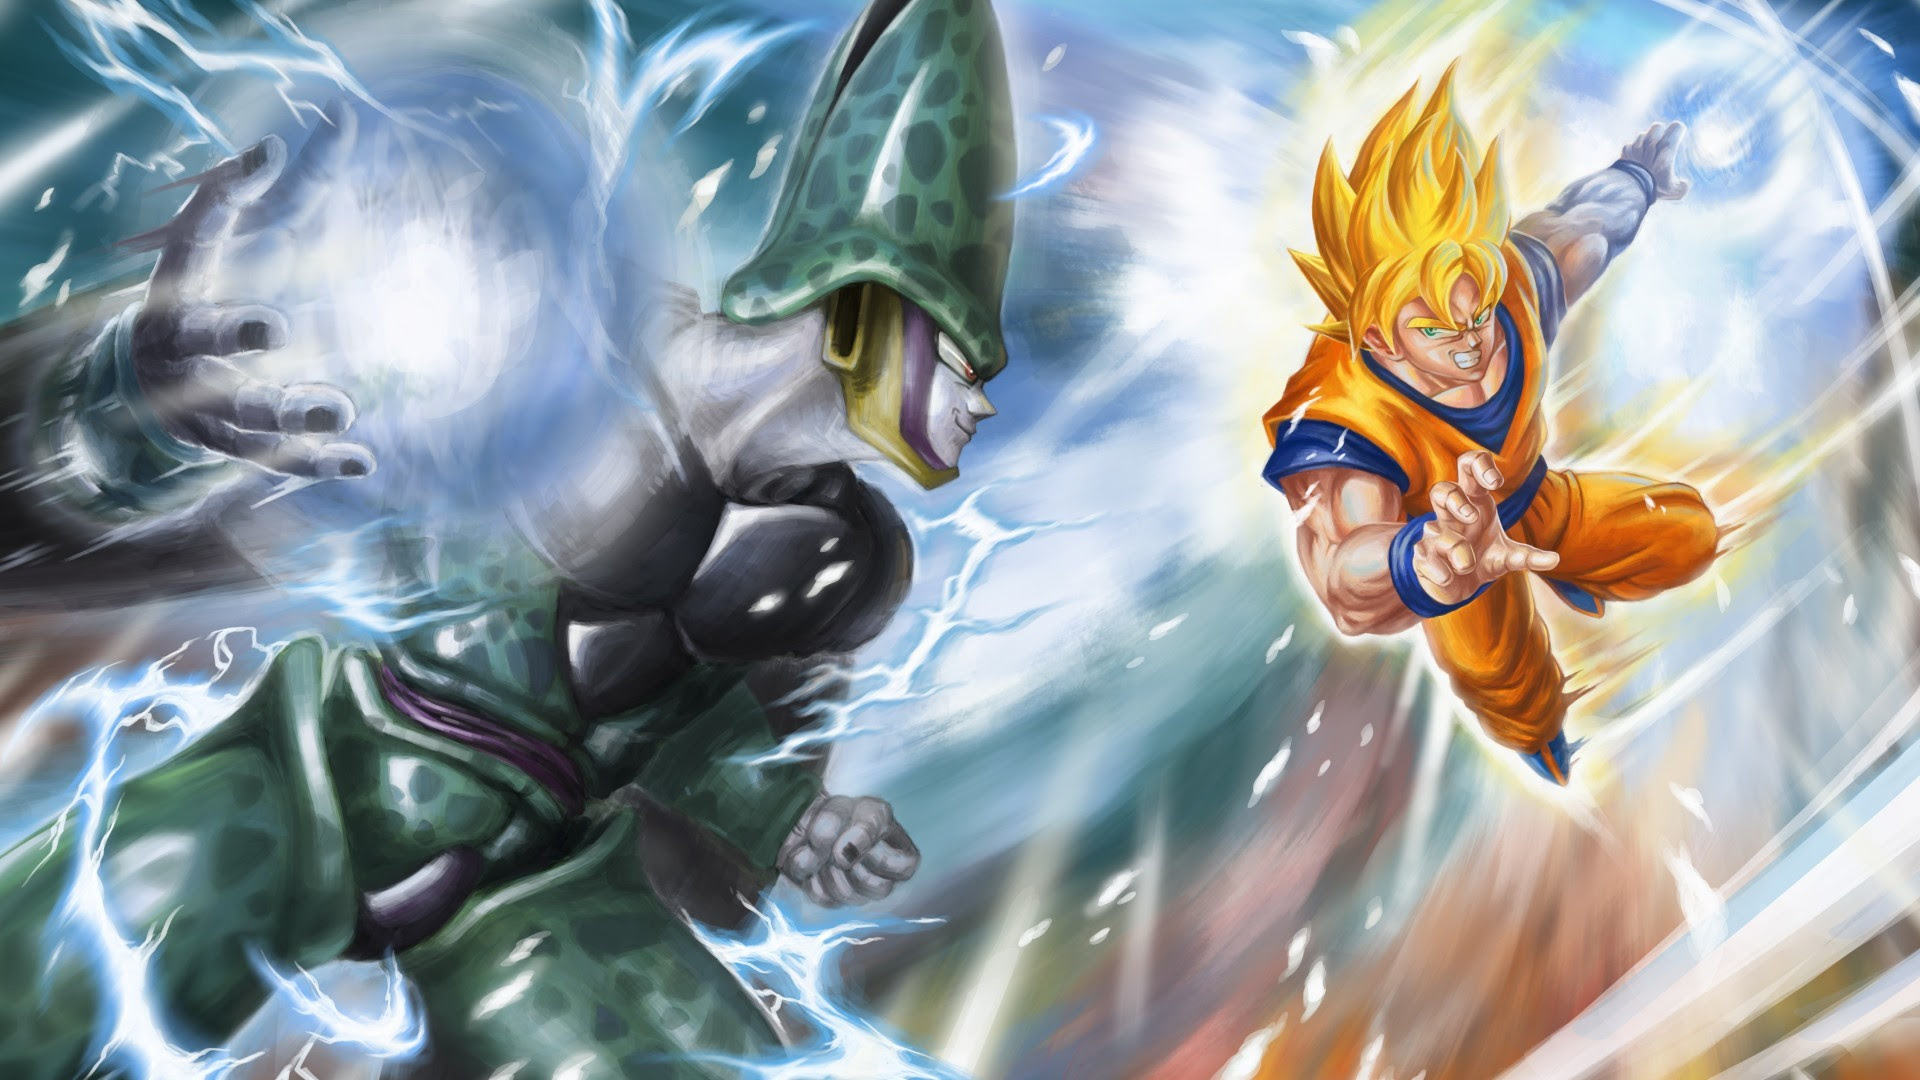 Dbz Hd Wallpaper 1920x1080 63 Images